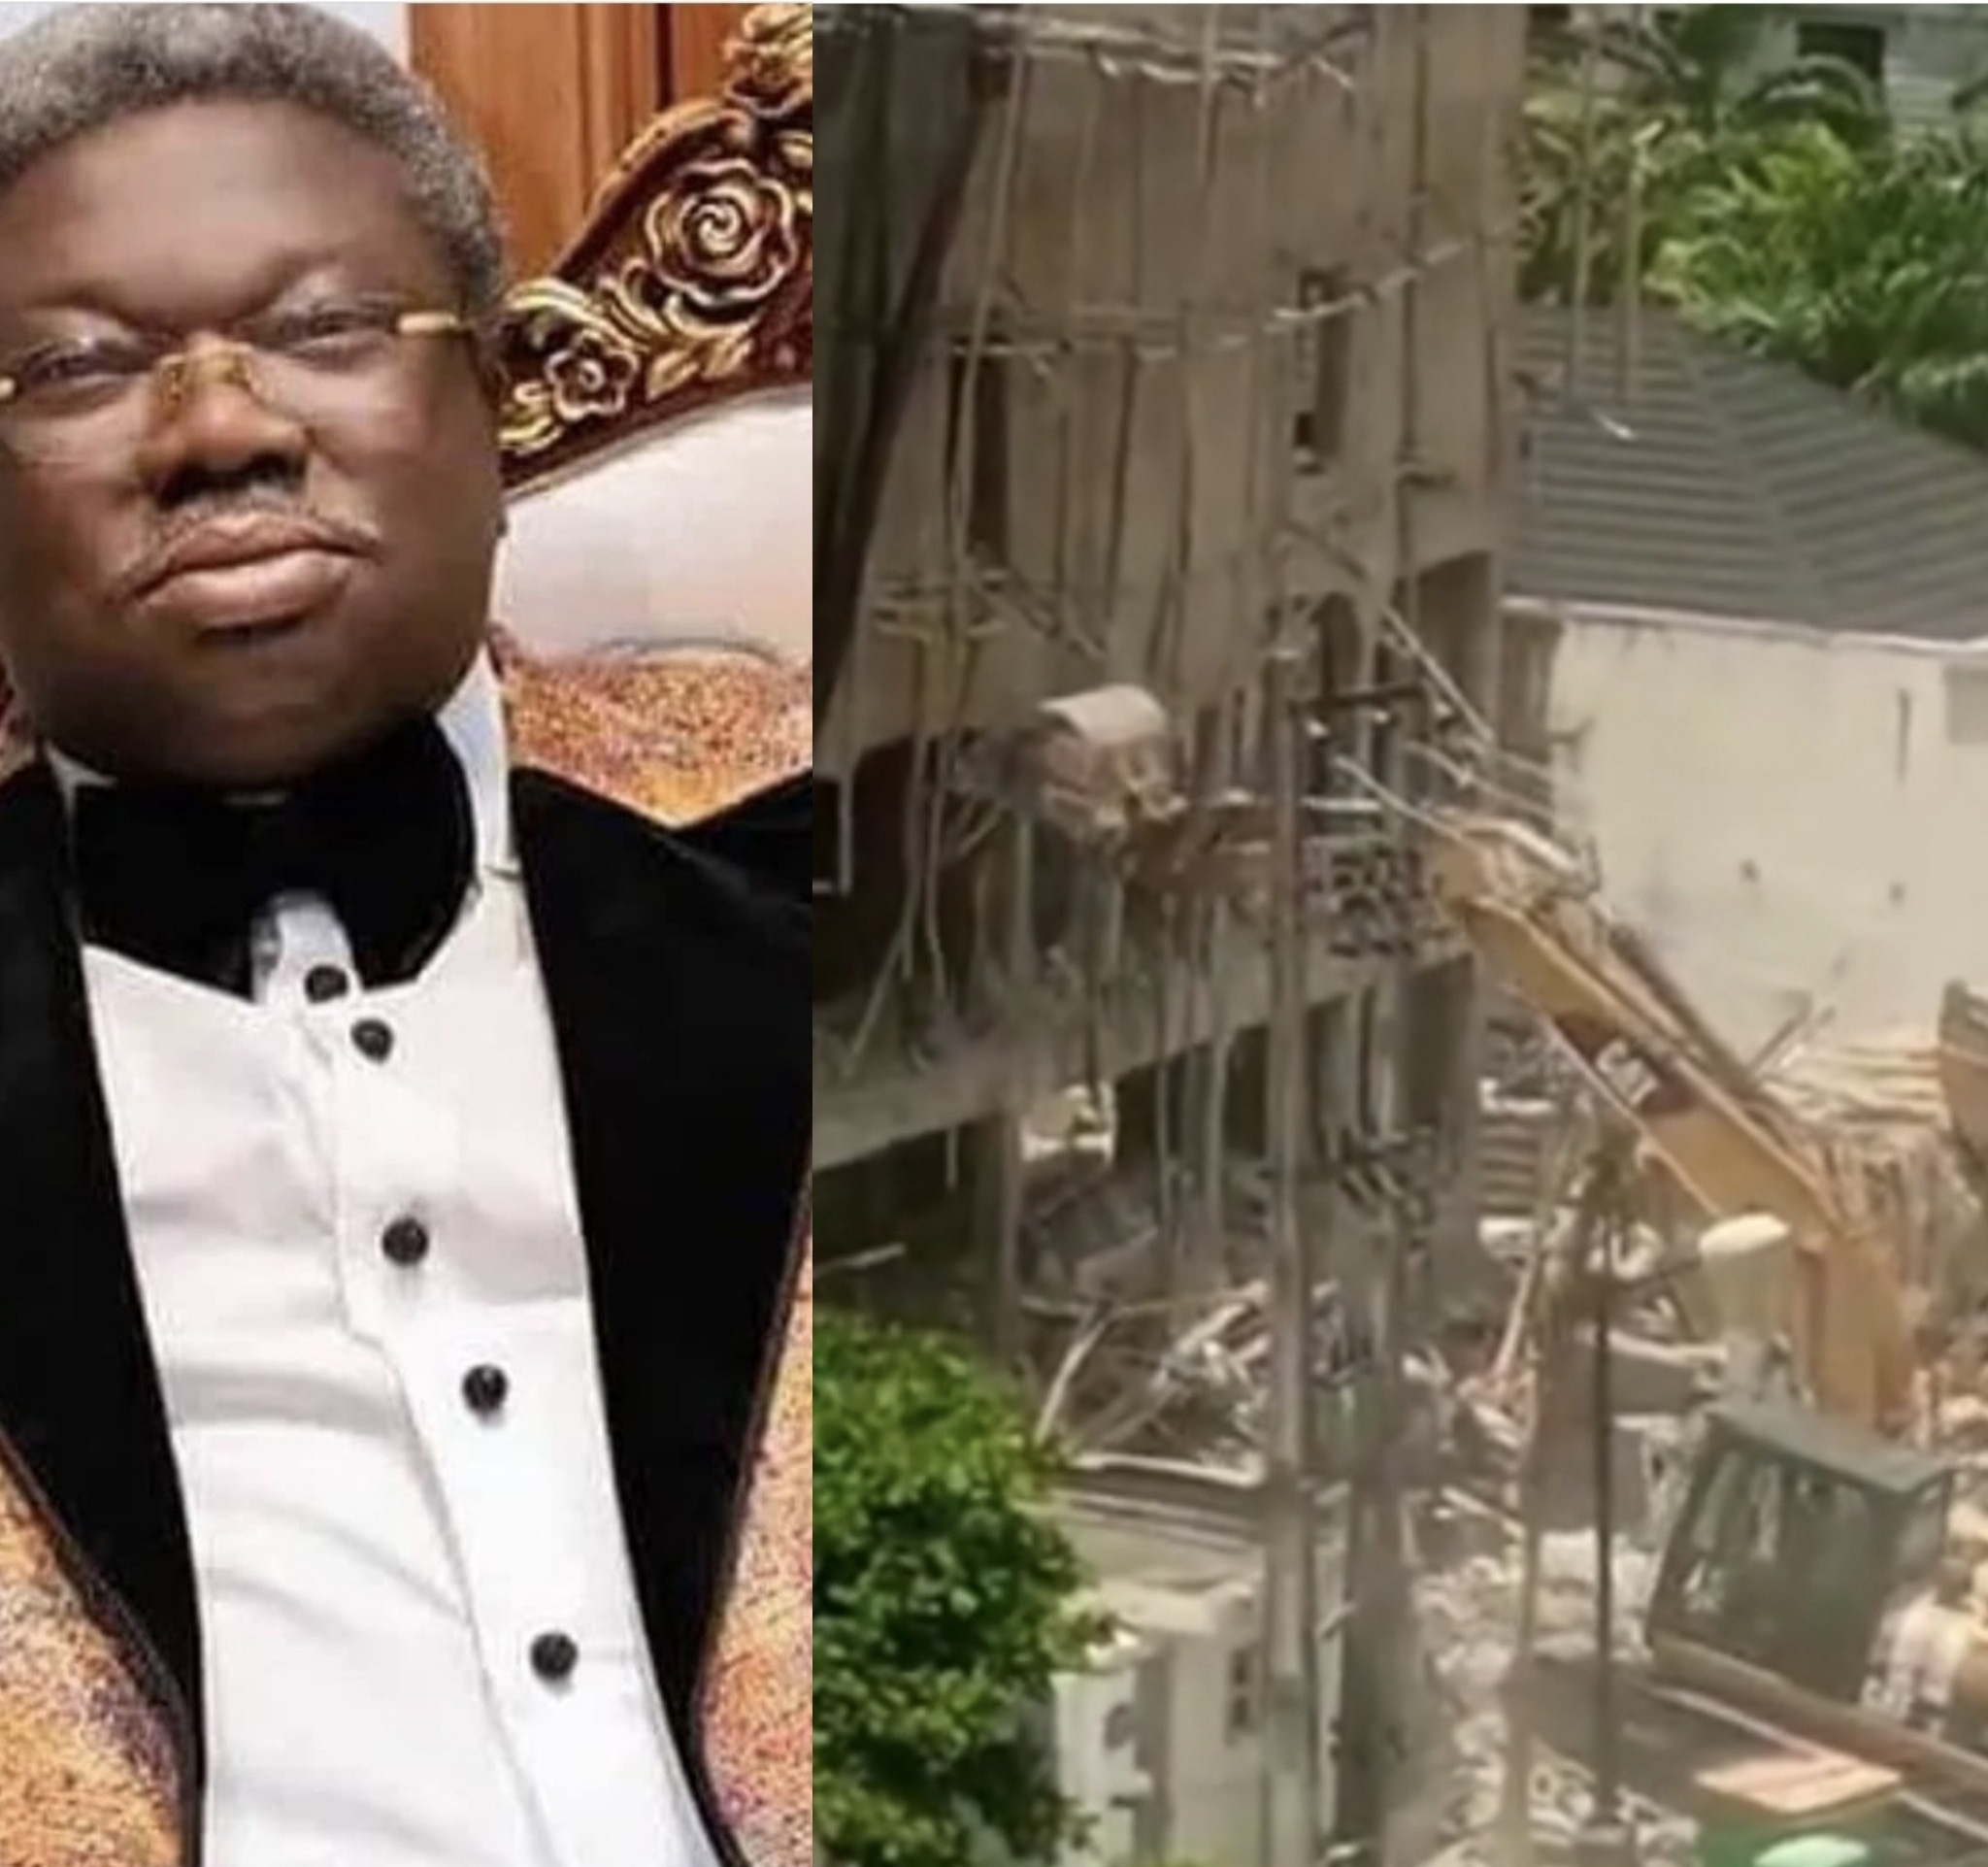 Lagos State Government brings down Sir Olu Okeowo